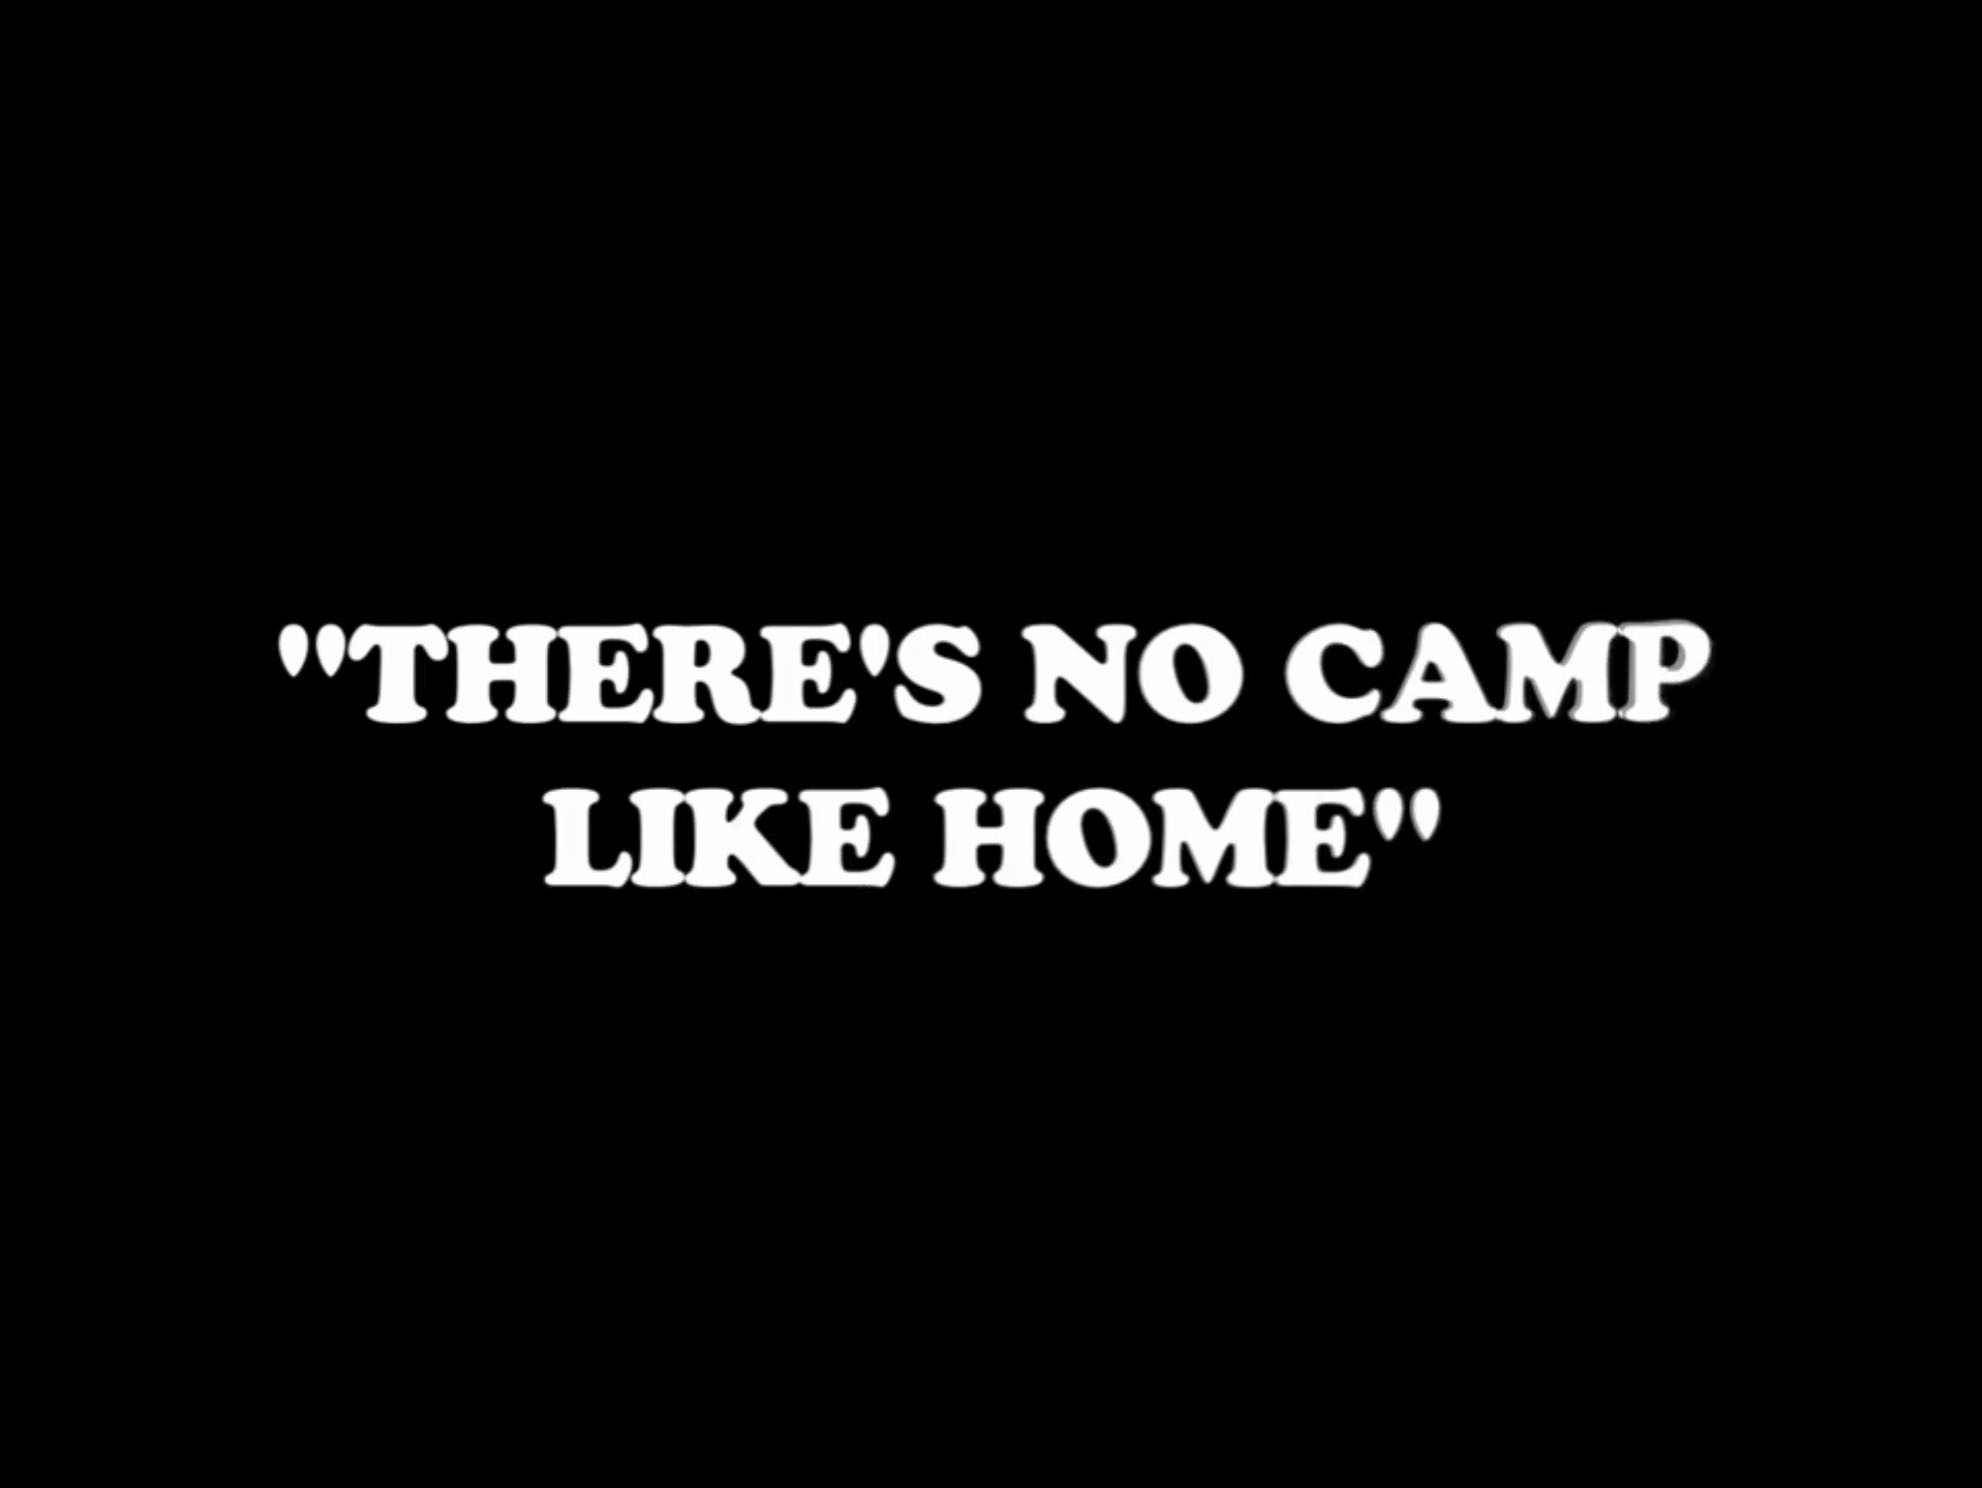 File:There's No Camp Like Home.jpg